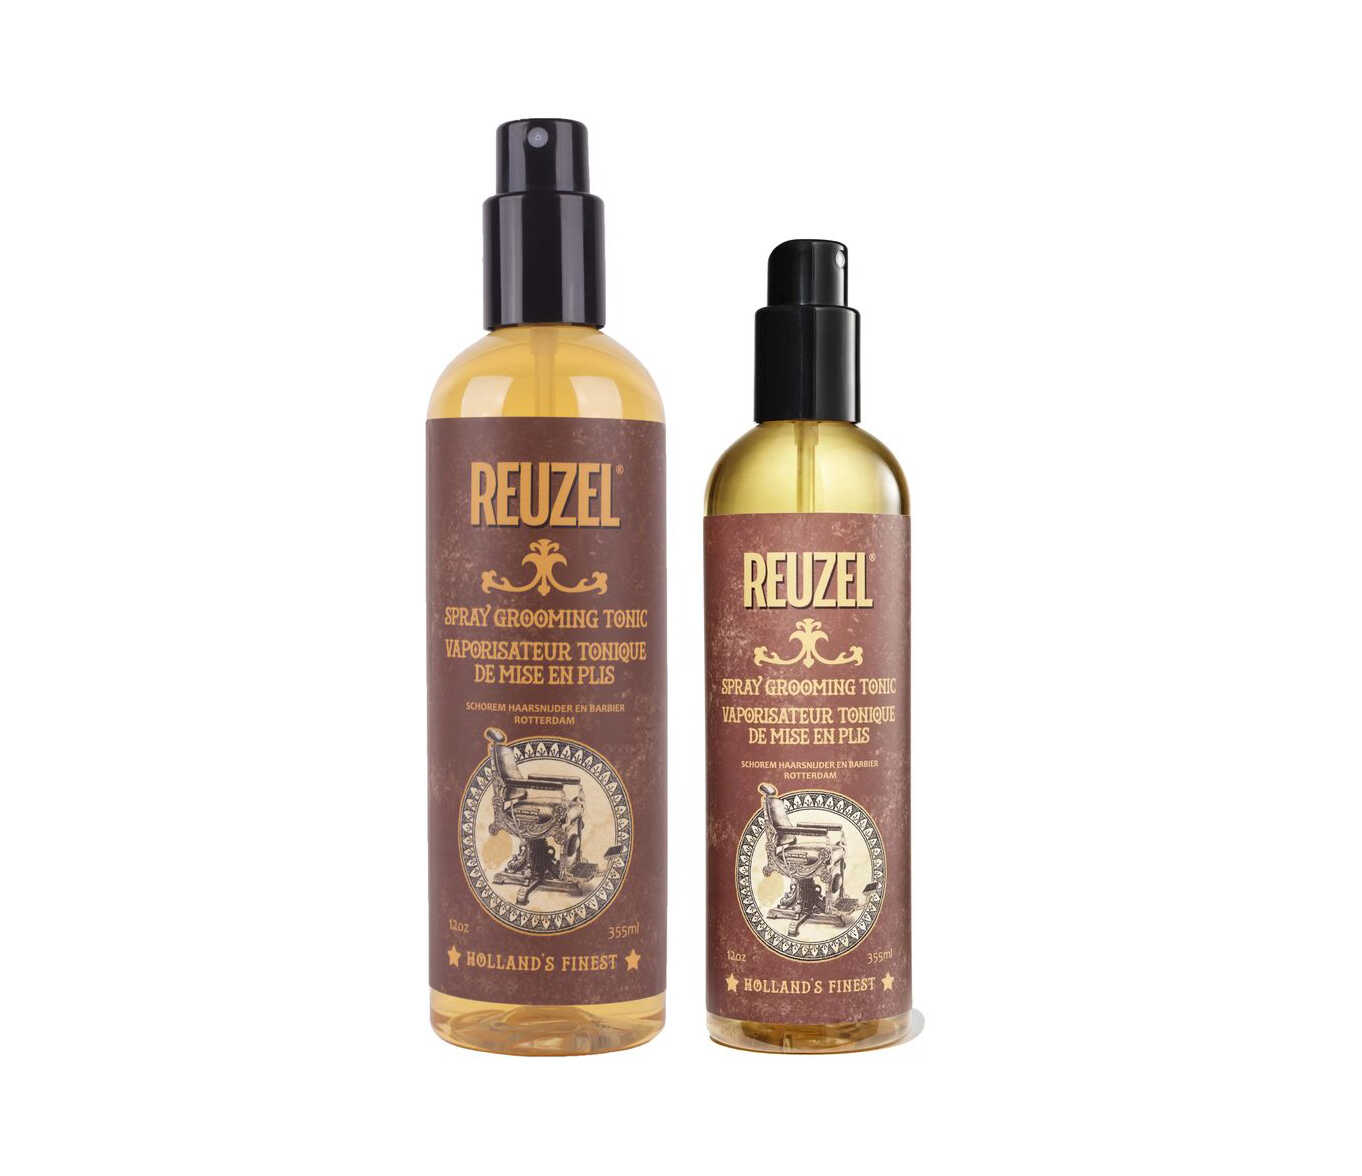 Reuzel Grooming Tonic Spray - vlasové tonikum ve spreji